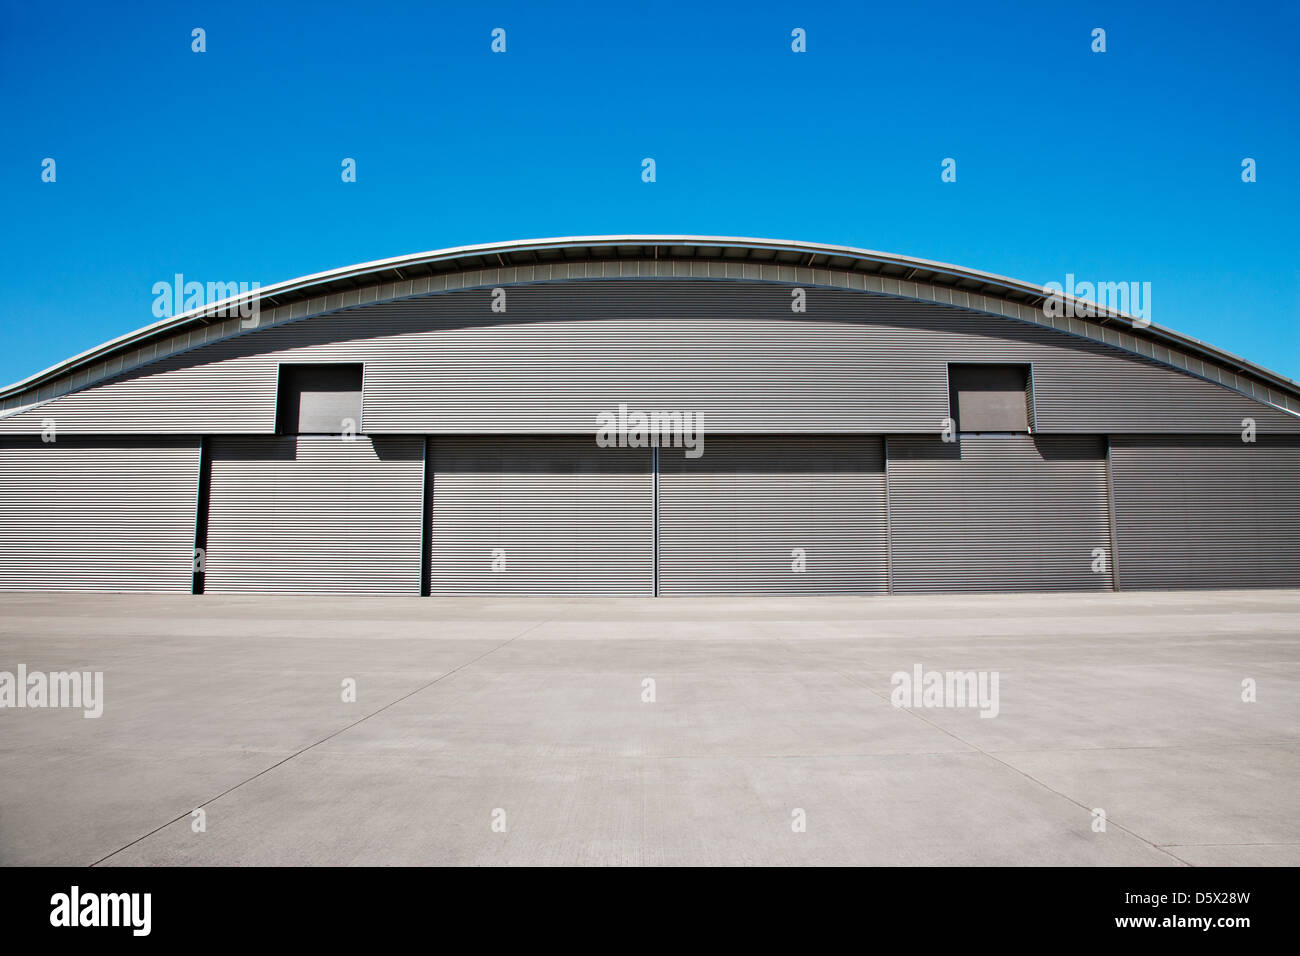 Lovely Curved Roof Of Warehouse And Blue Sky   Stock Image